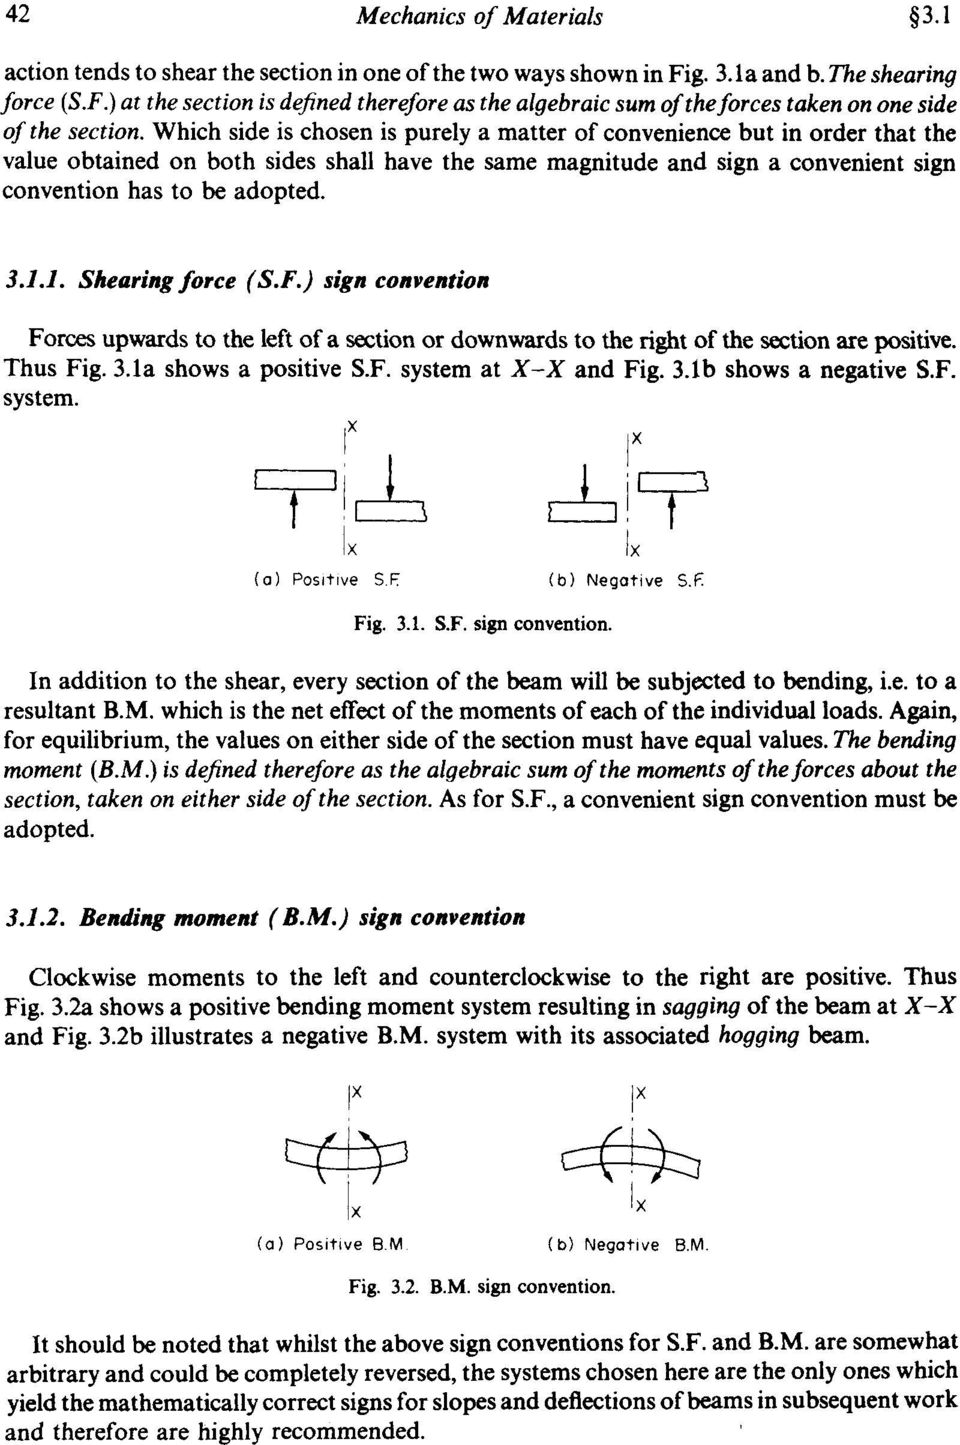 Chapter 3 Shearing Force And Bending Moment Diagrams Summary Pdf Diagram Resulting From The Elastic Analysis Of A Which Side Is Chosen Purely Matter Convenience But In Order That Value 32